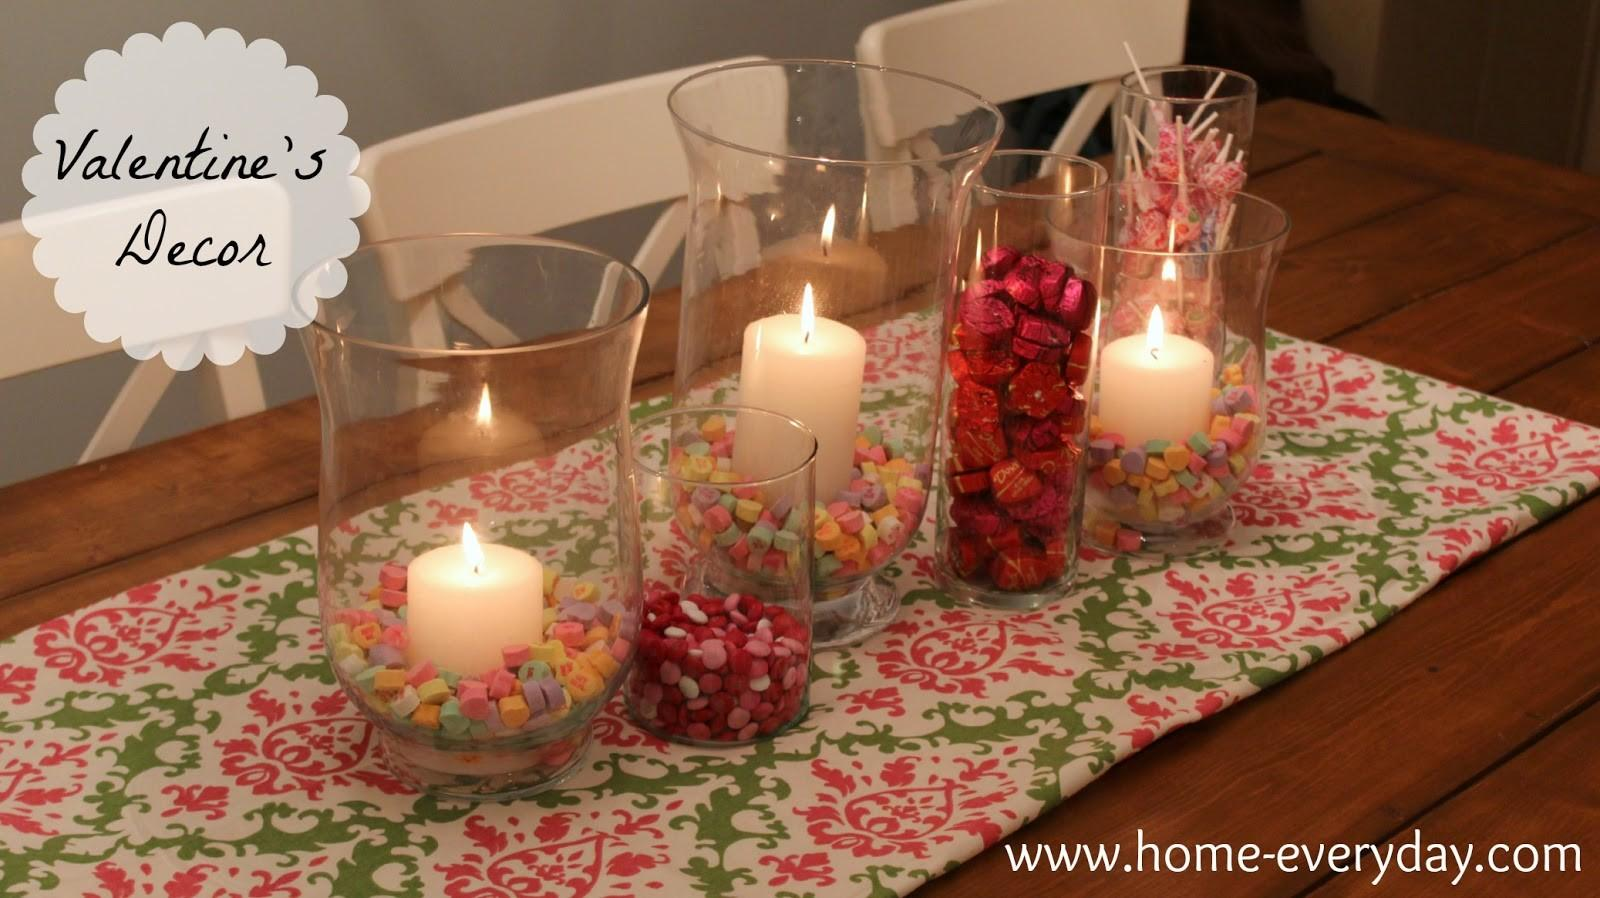 Flowers Candy Books Valentine Dining Table Decor